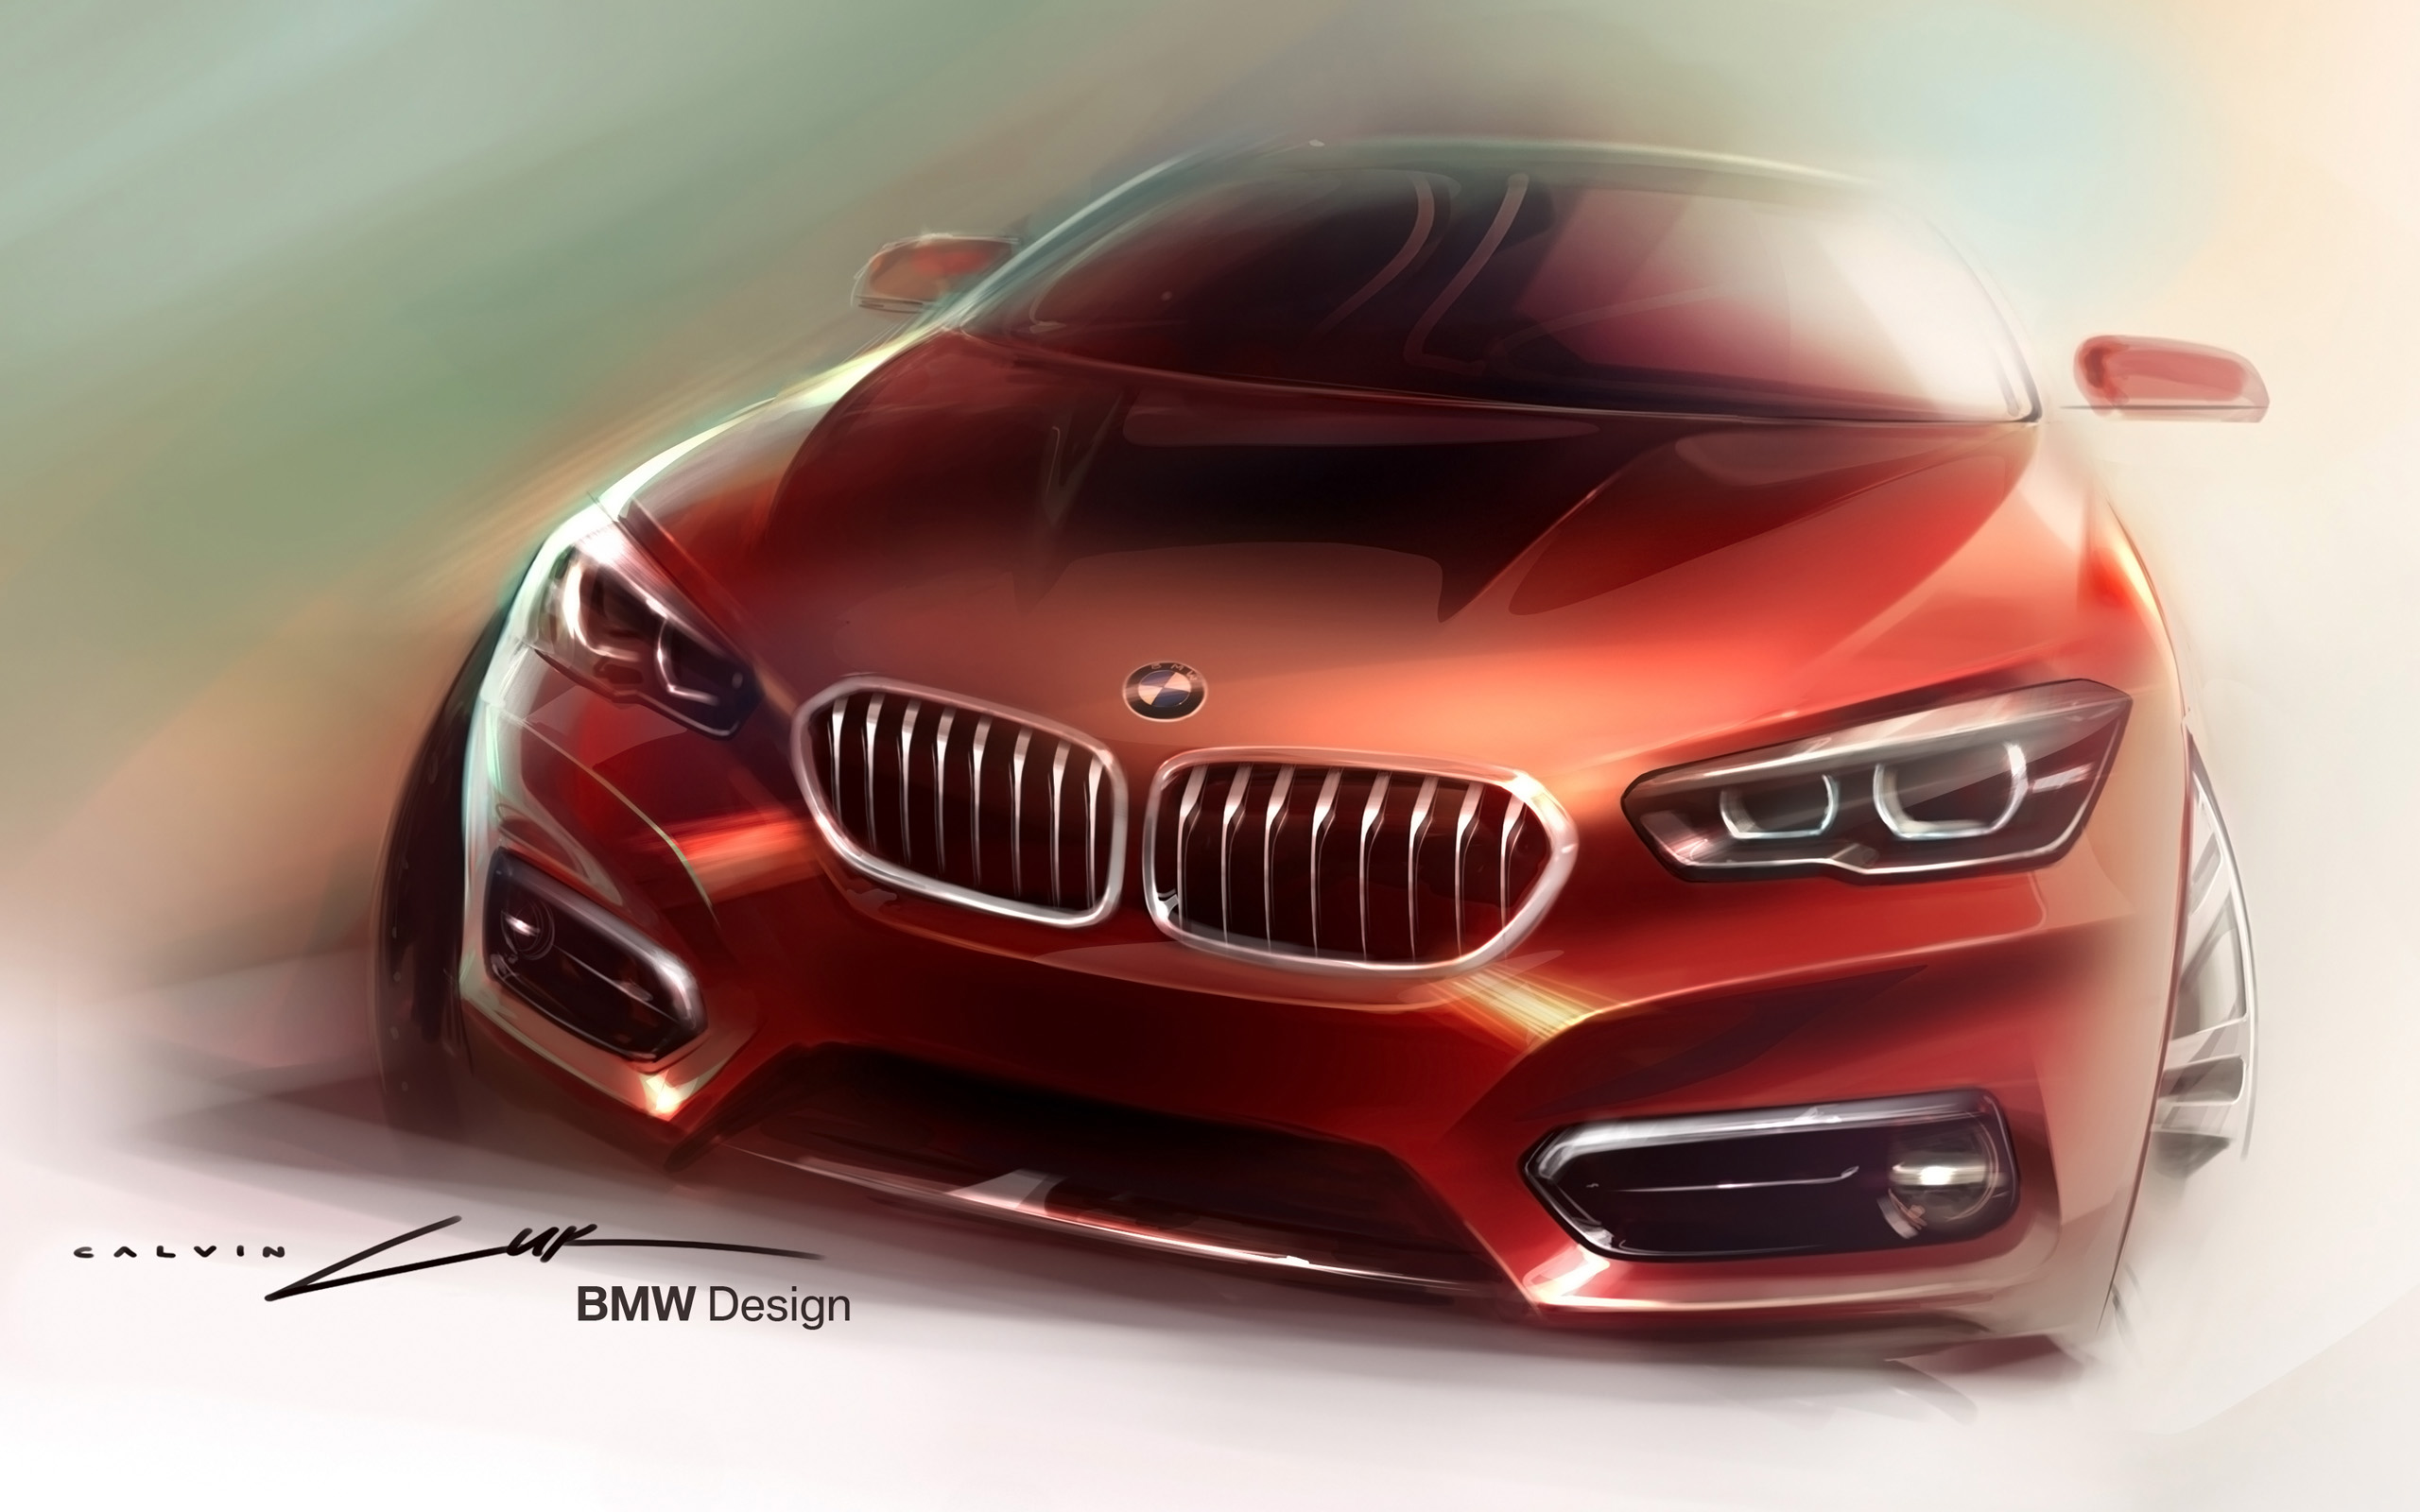 2015 bmw 1 series concept wallpaper hd car wallpapers id 5107. Black Bedroom Furniture Sets. Home Design Ideas